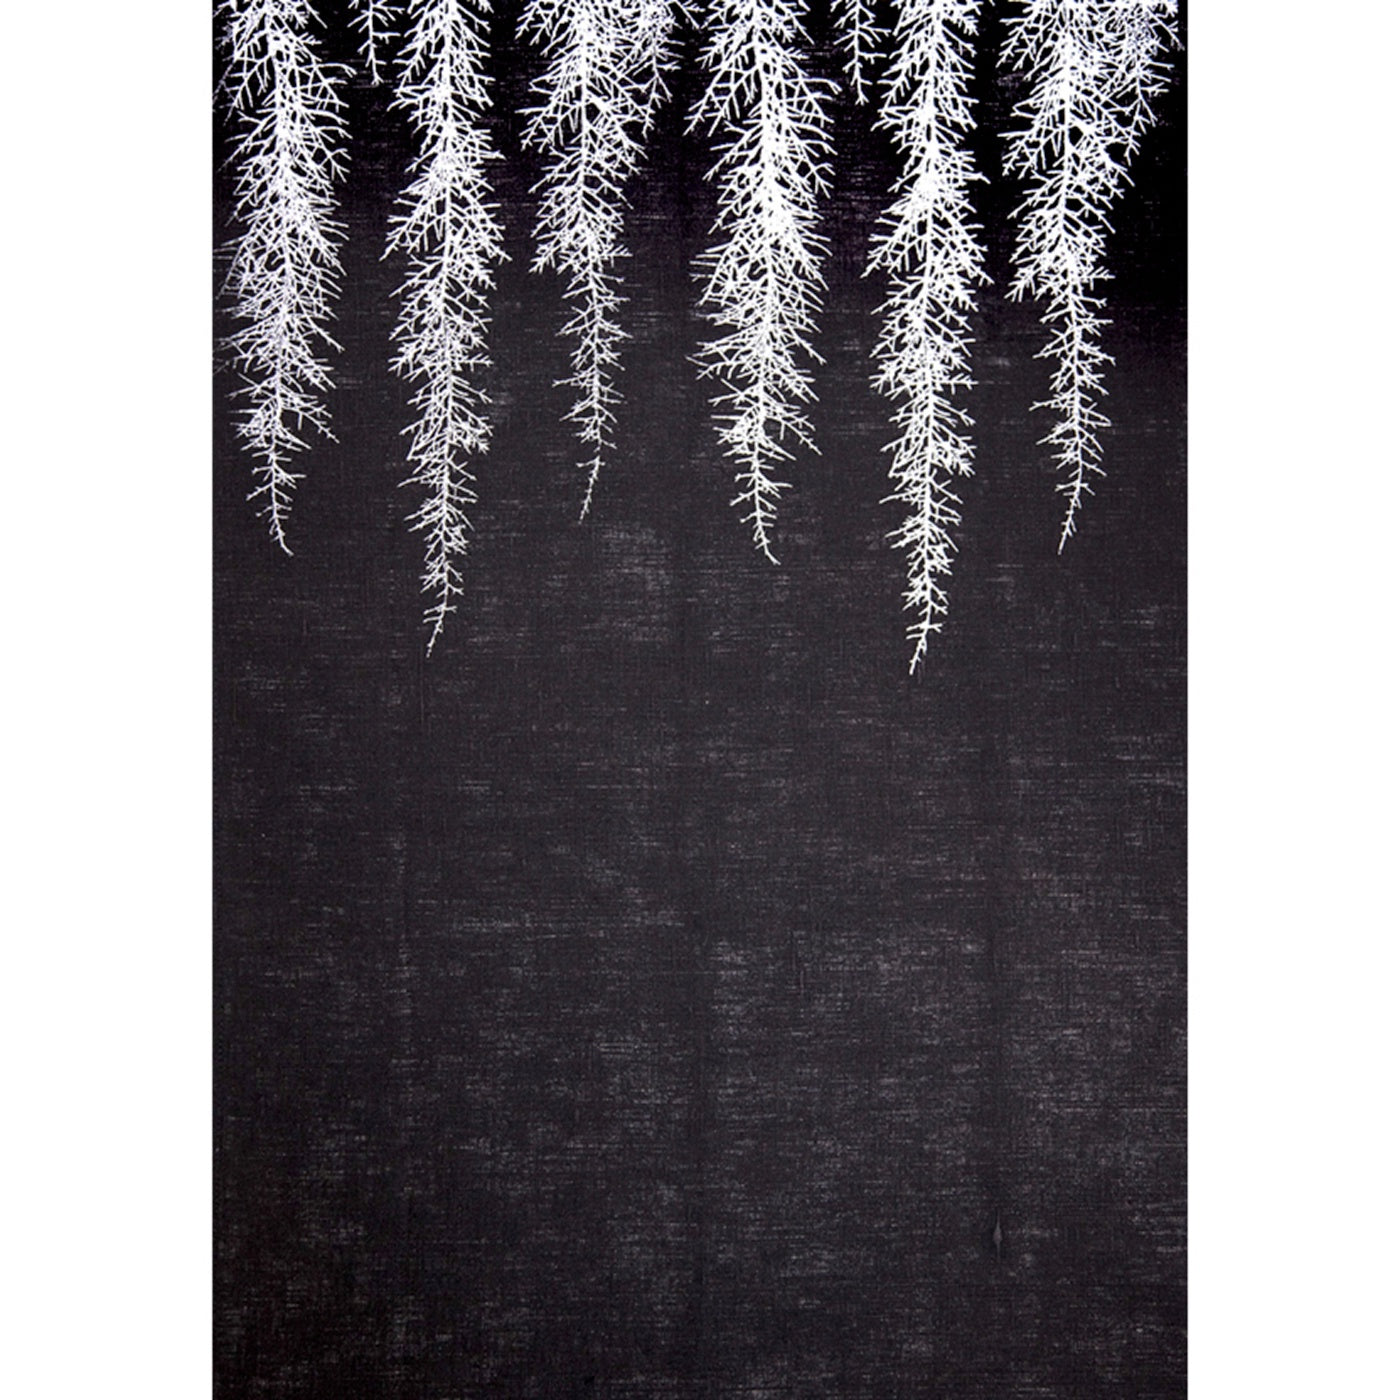 Stalley Textile Co. - Tea Towel - Huon Pine - Silver on Black